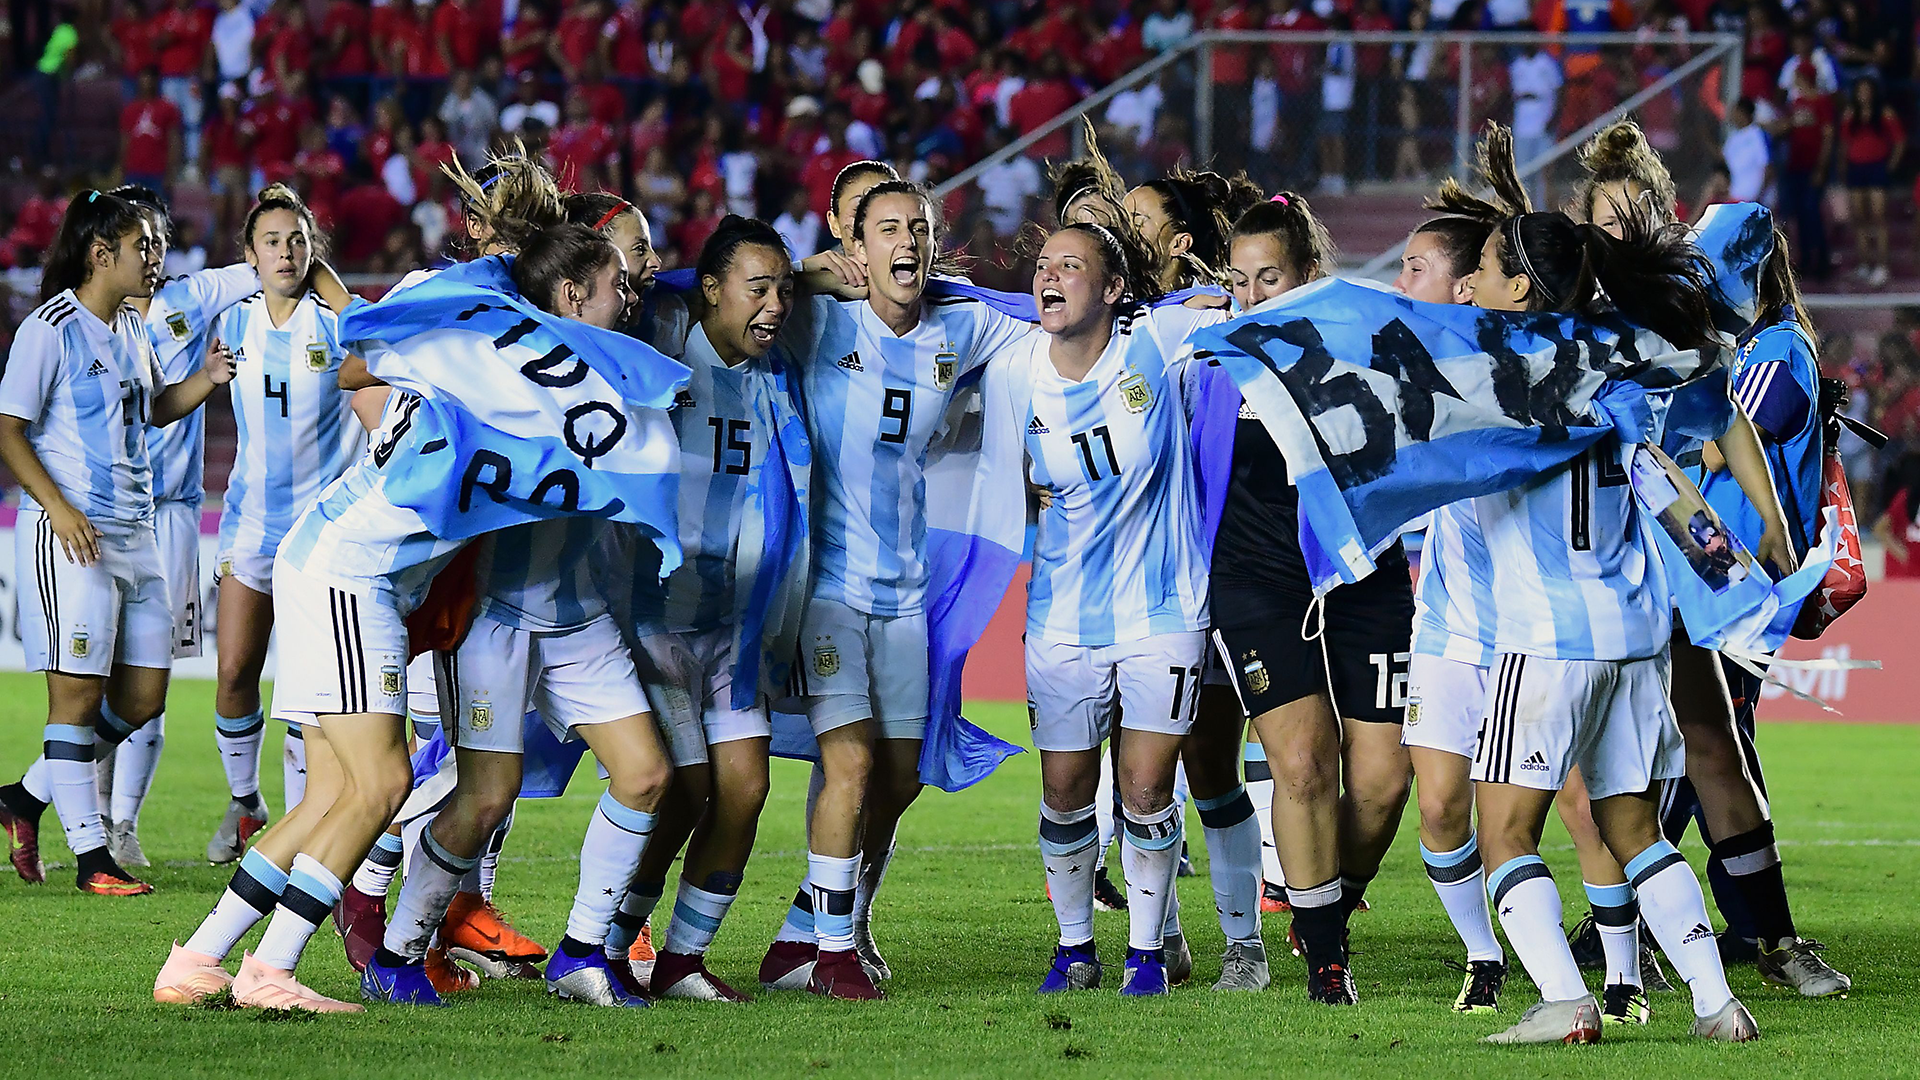 Argentina women's national team 2018